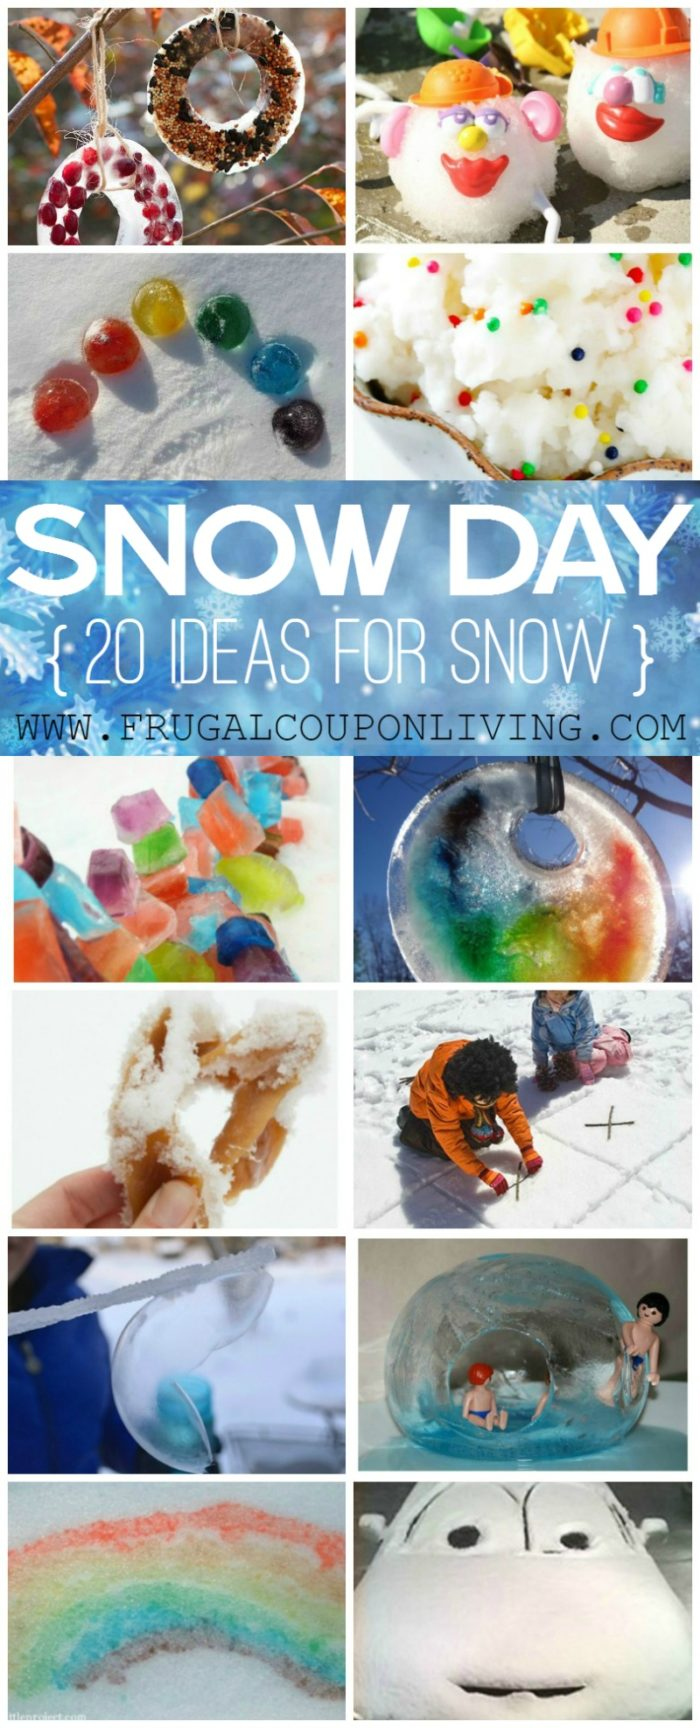 20 Snow Day Ideas on Frugal Coupon Living